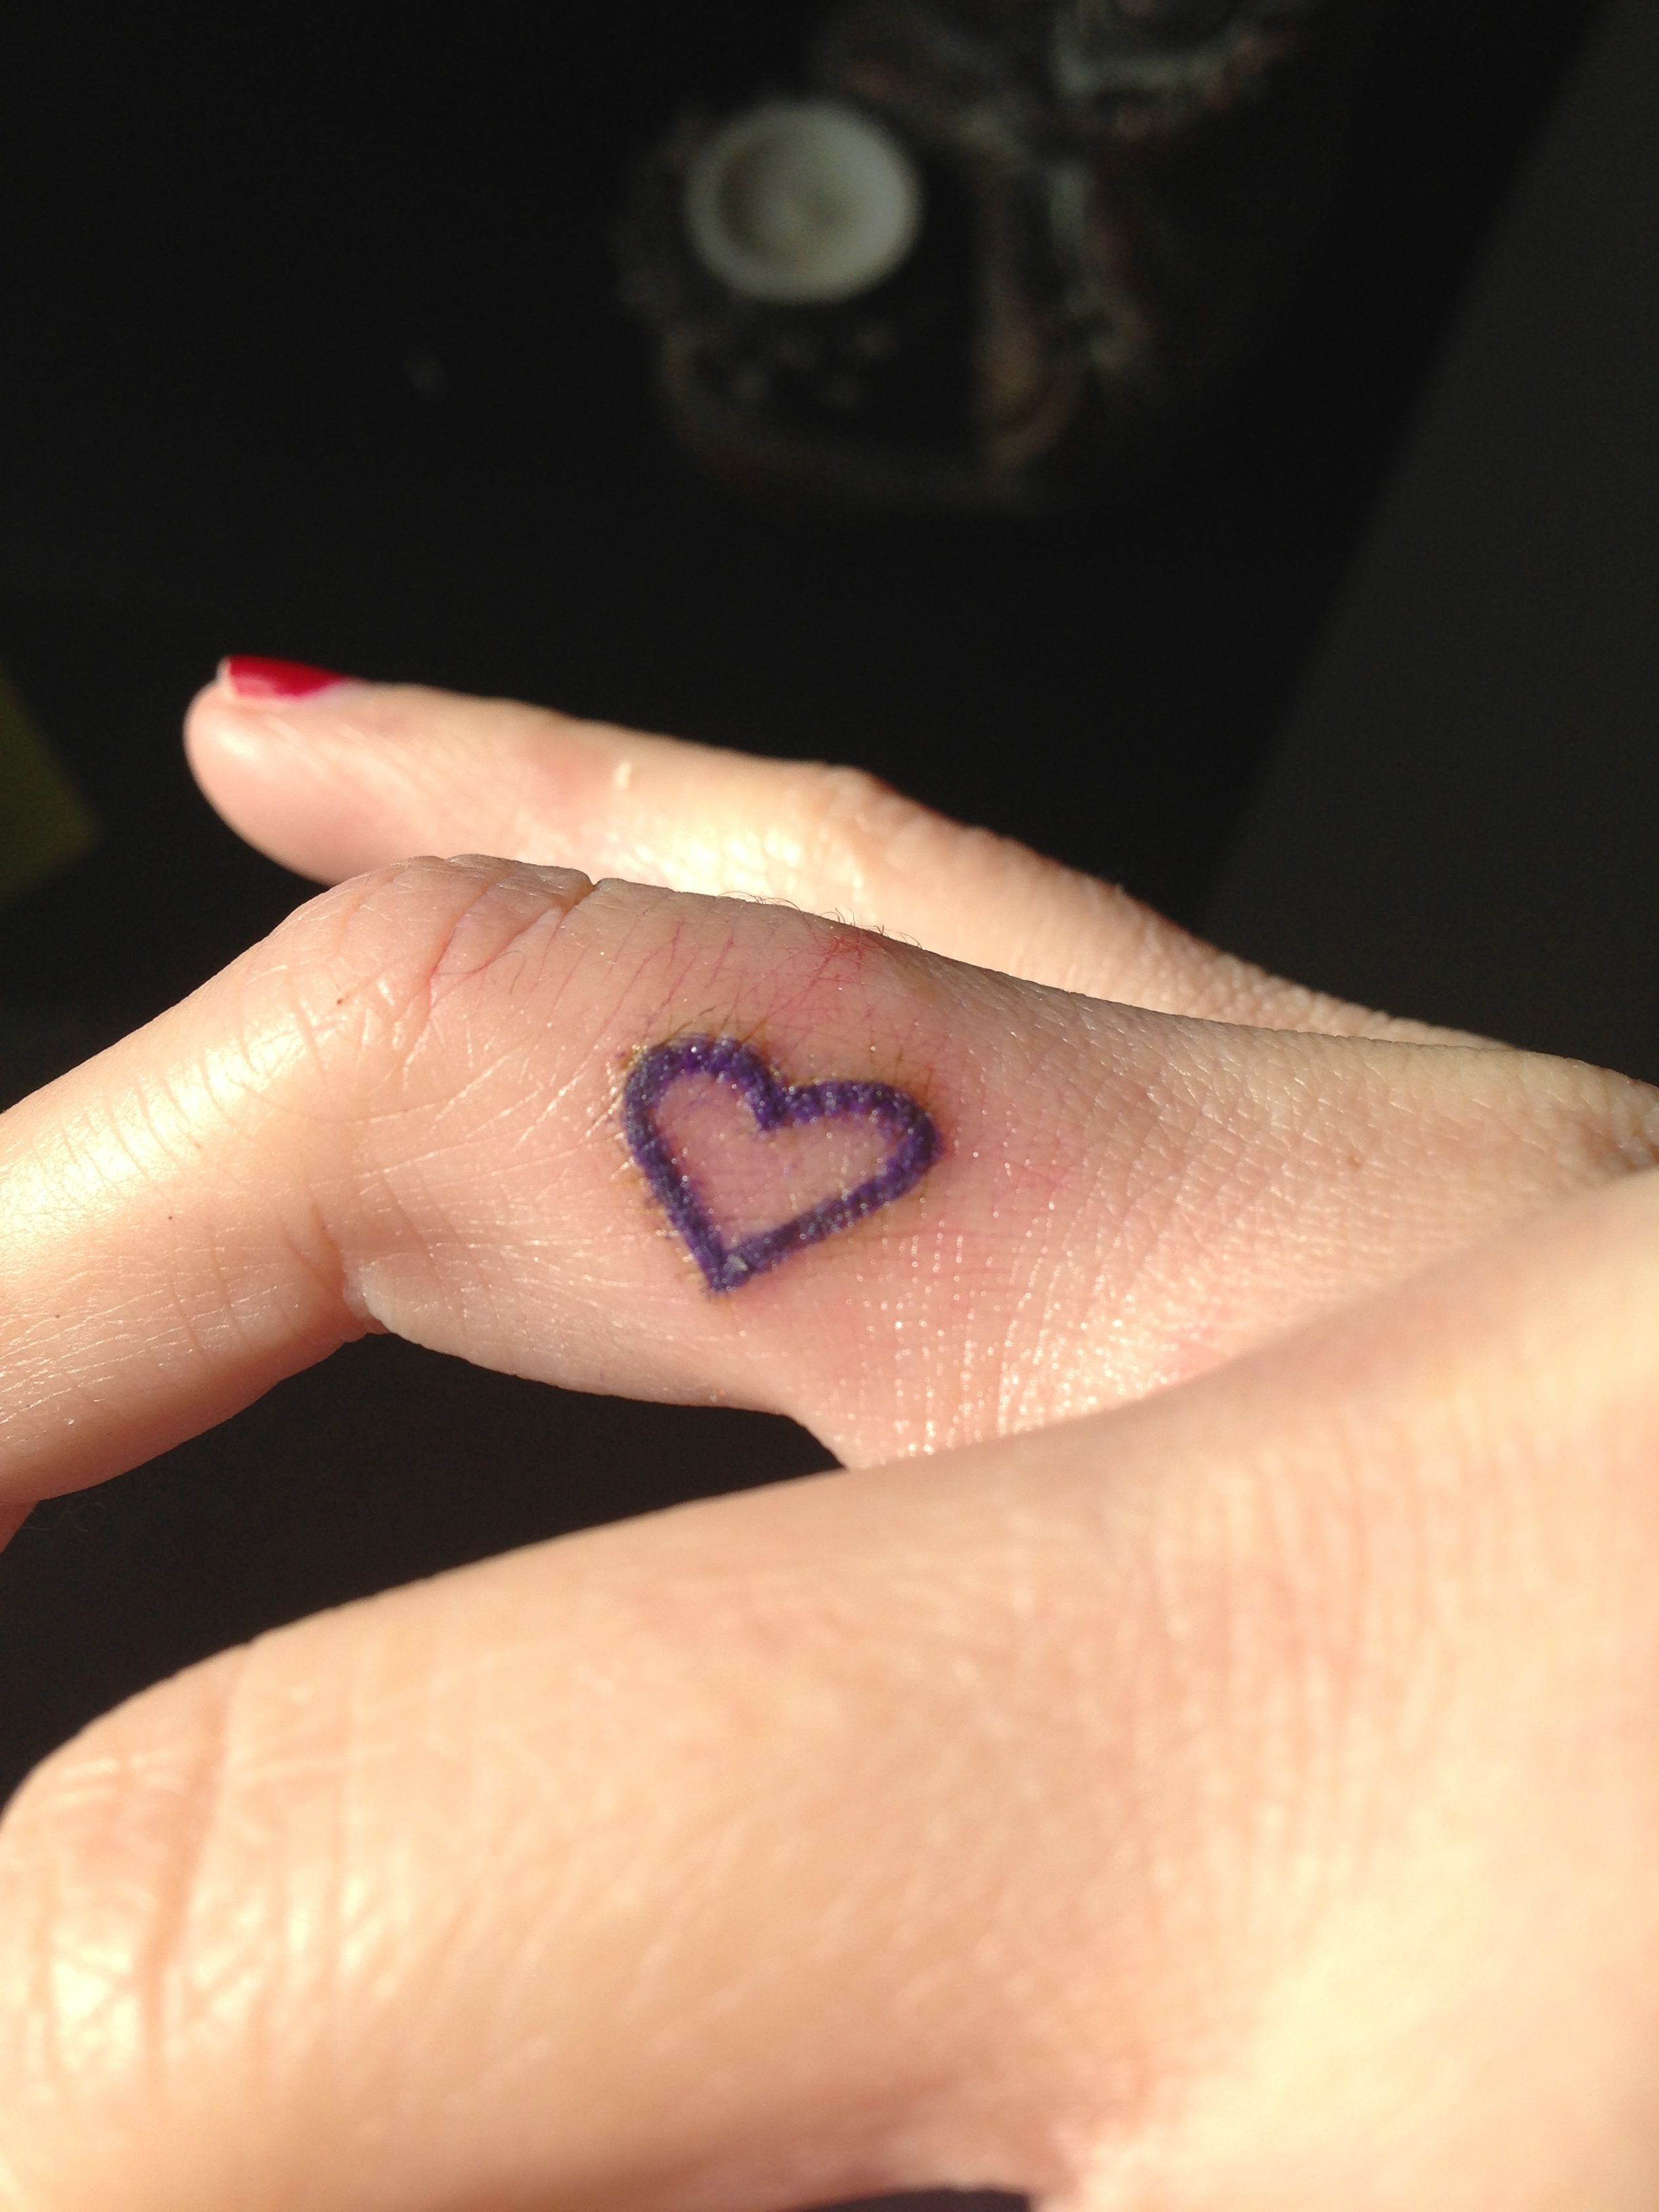 55 romantic wedding ring finger tattoo designs and ideas - Heart In Hand Tattoo Sketch Best Tattoo Designs Drawling Heart Tattoo On Finger Pinterest Tattoo Designs And Tattoo